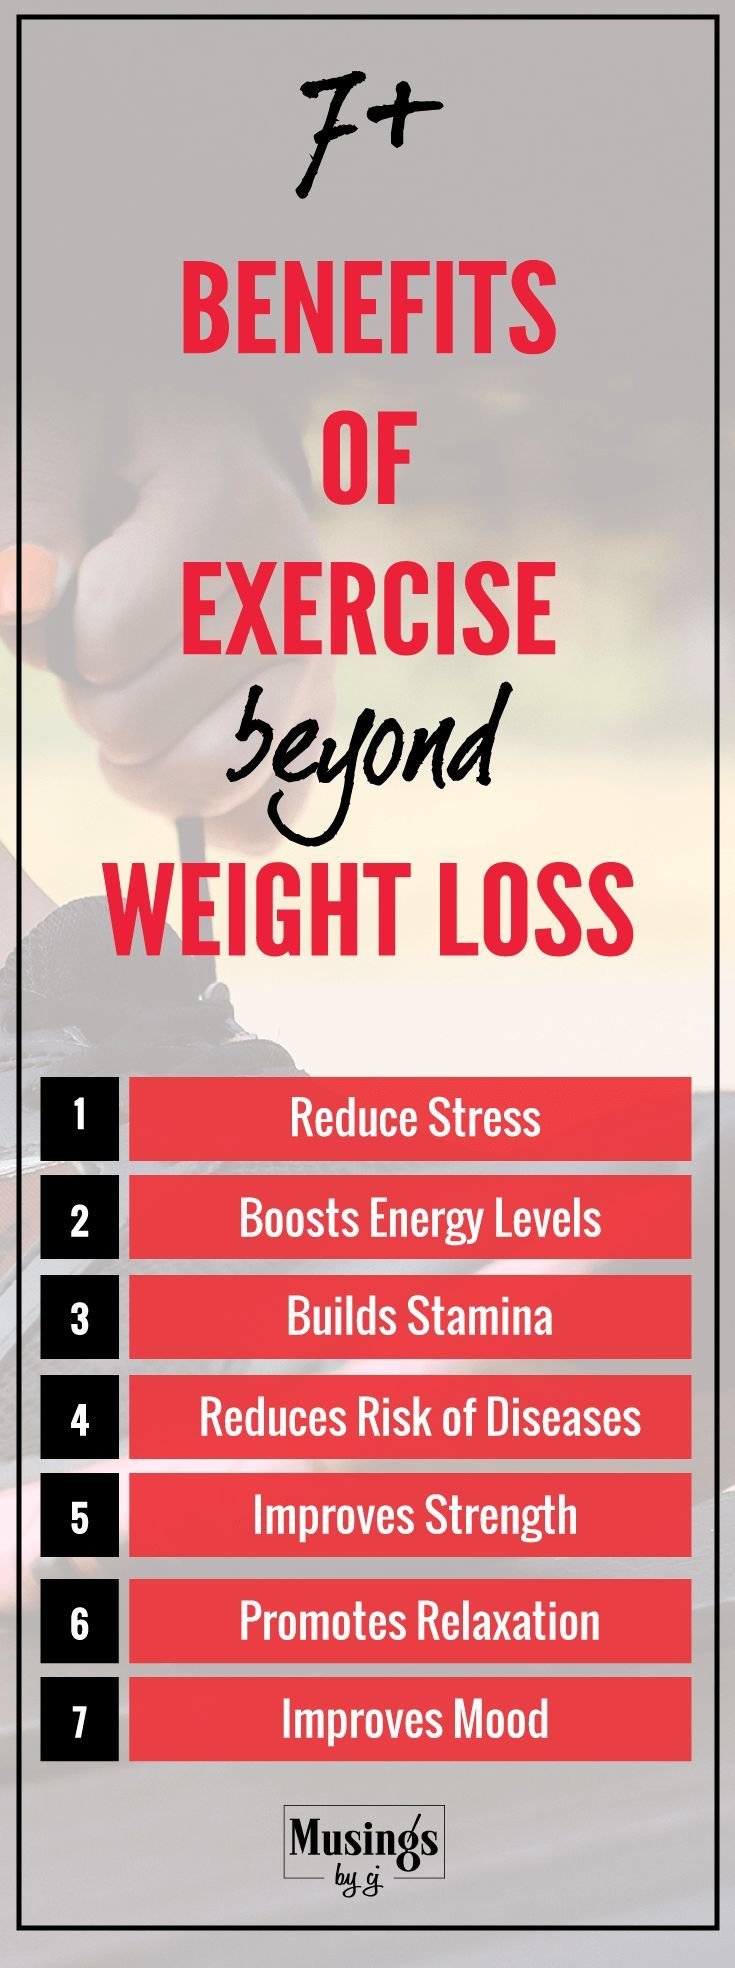 Benefits of Exercise beyond Weight Loss  Routine Benefit and